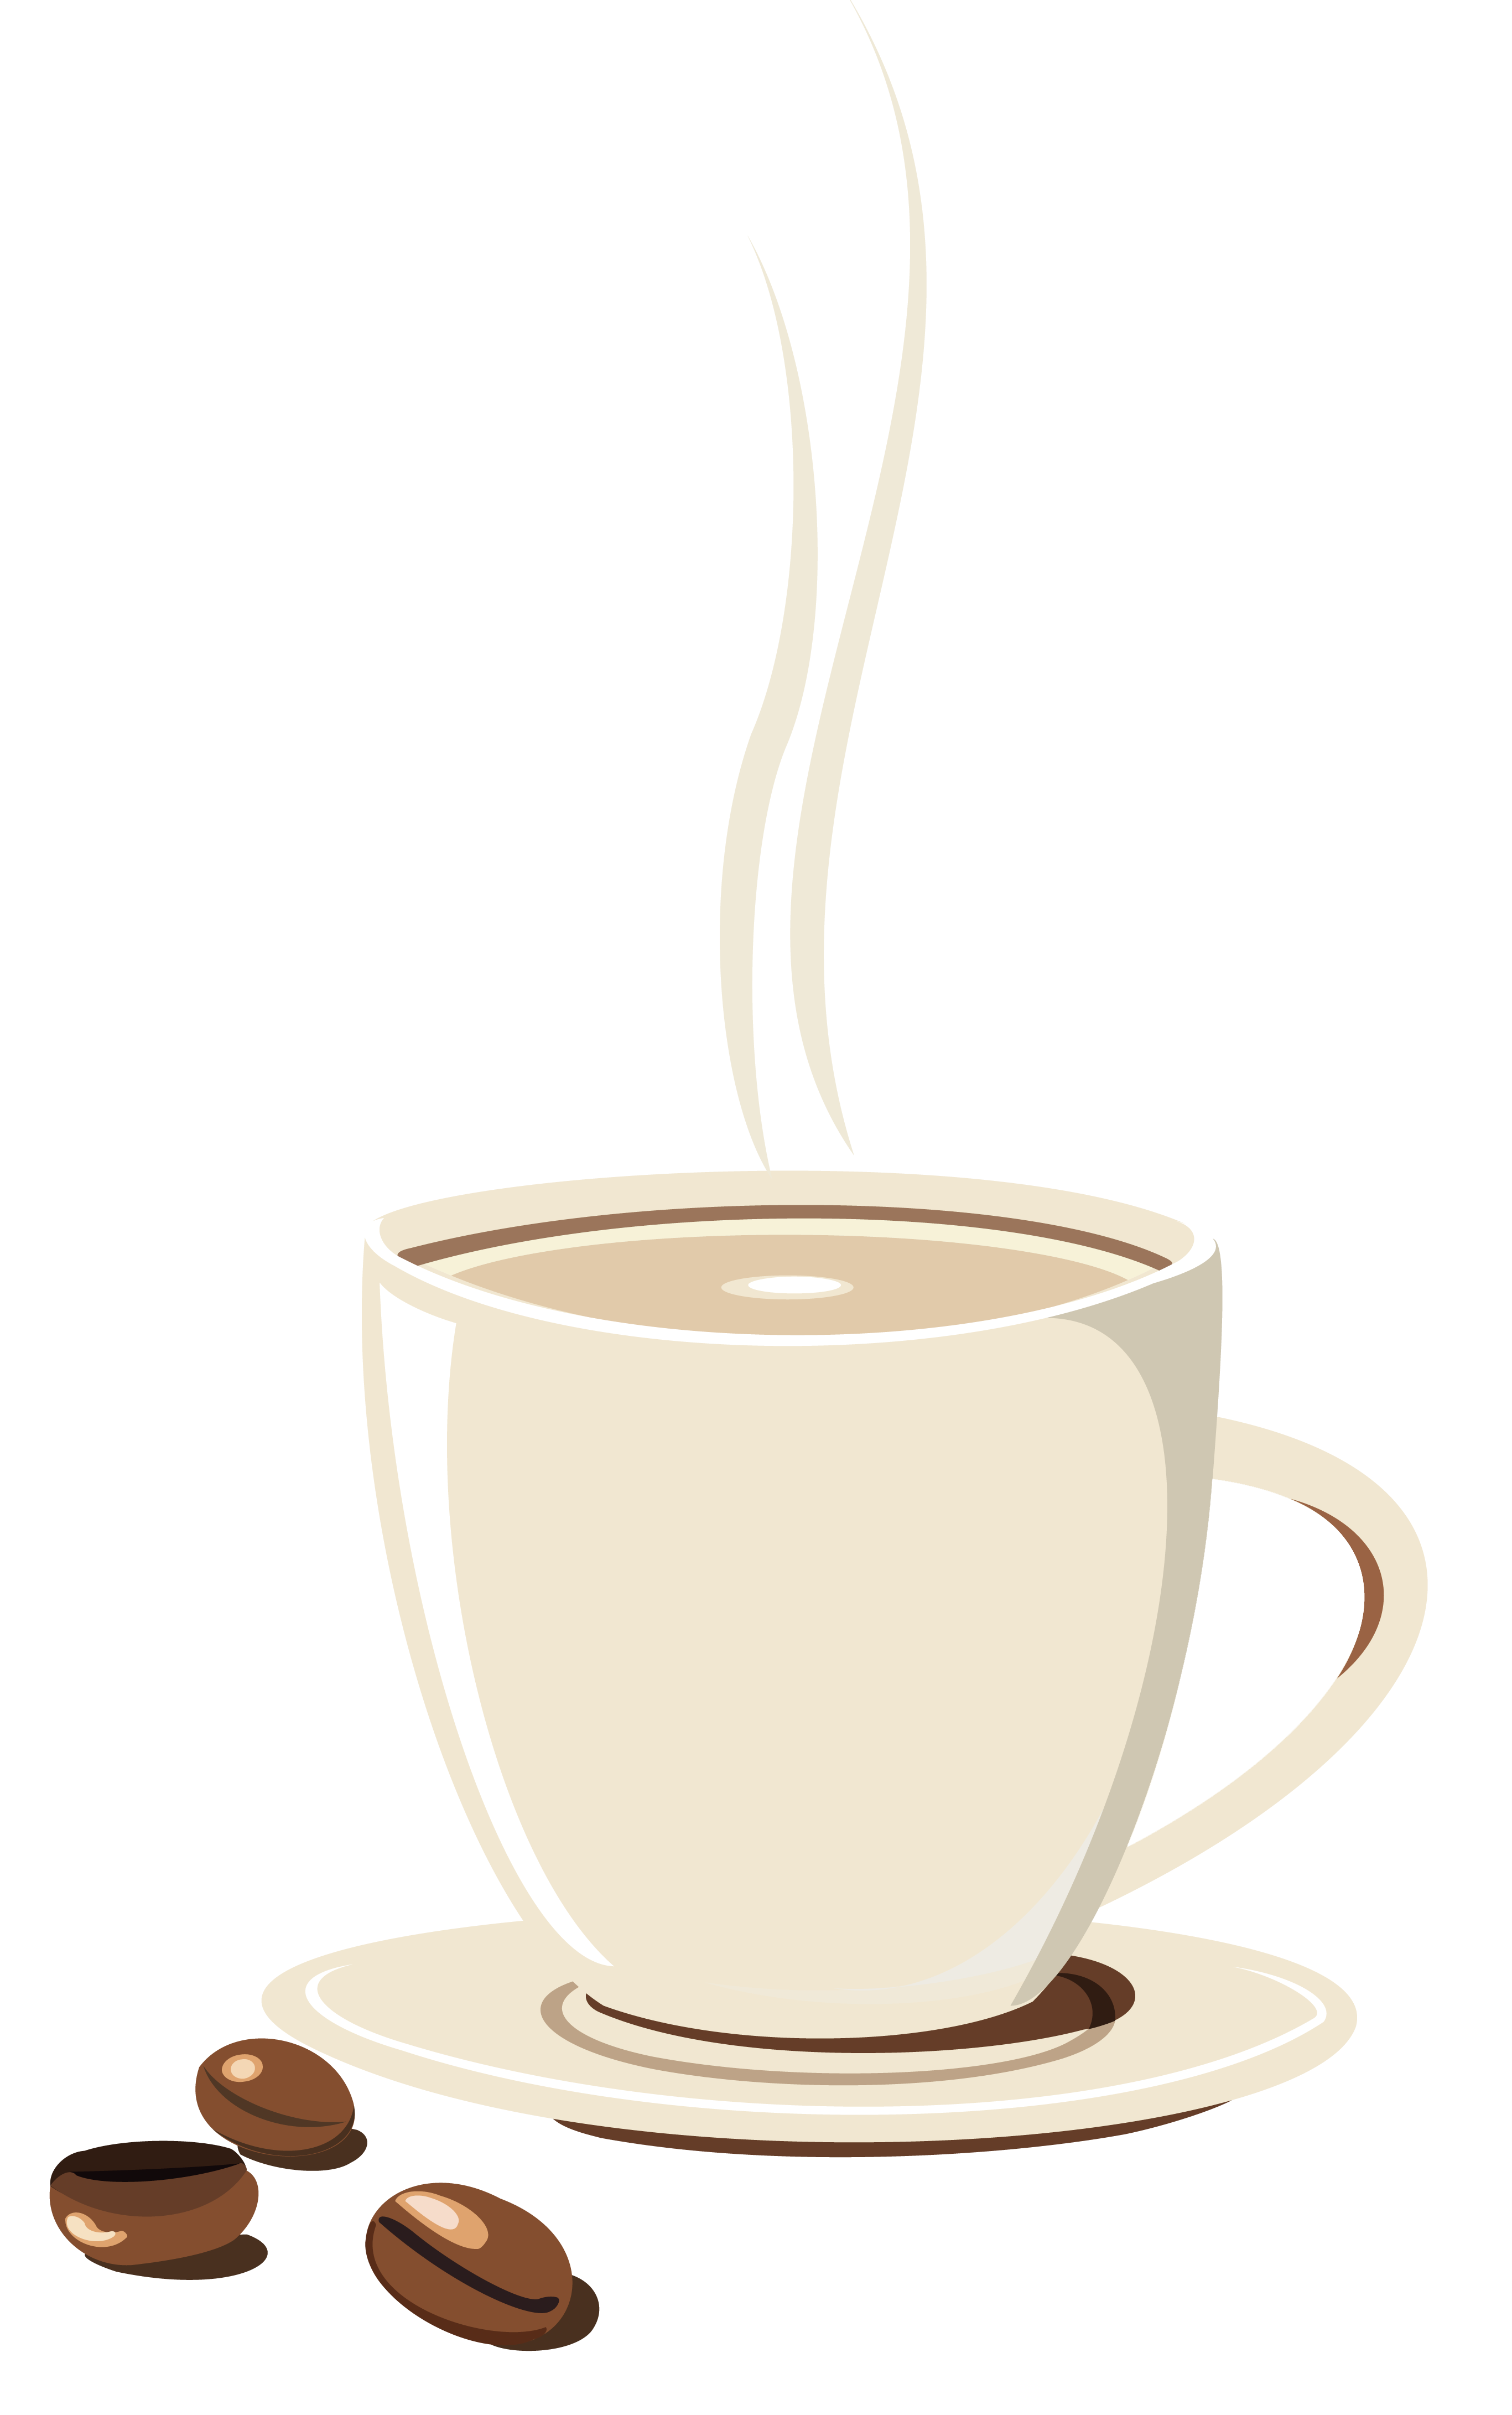 Coffee png picture gallery. Clipart cup silhouette